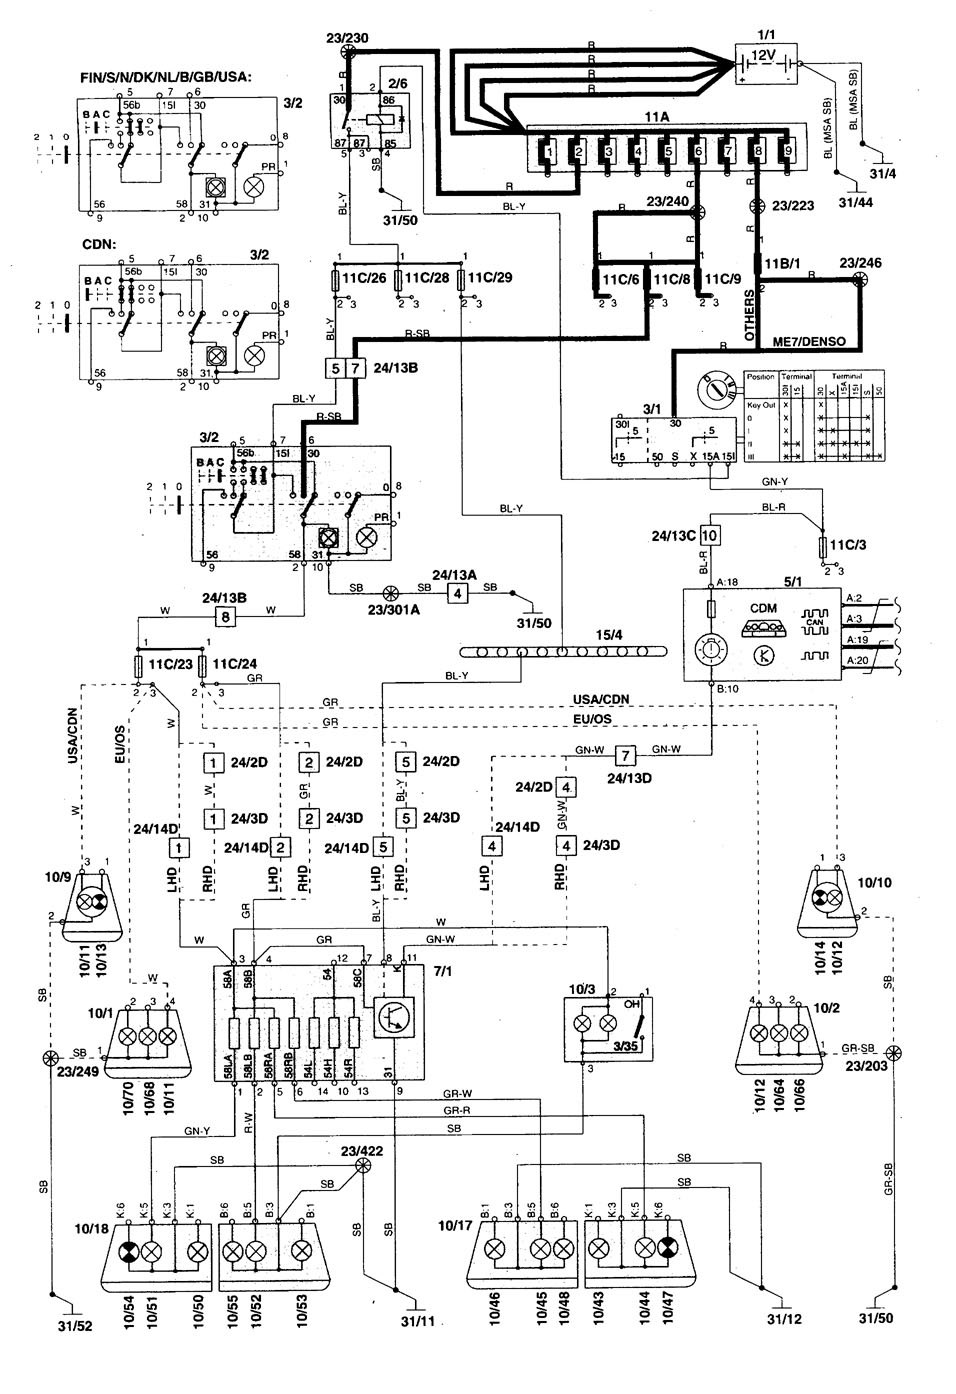 wiring diagram for volvo s60